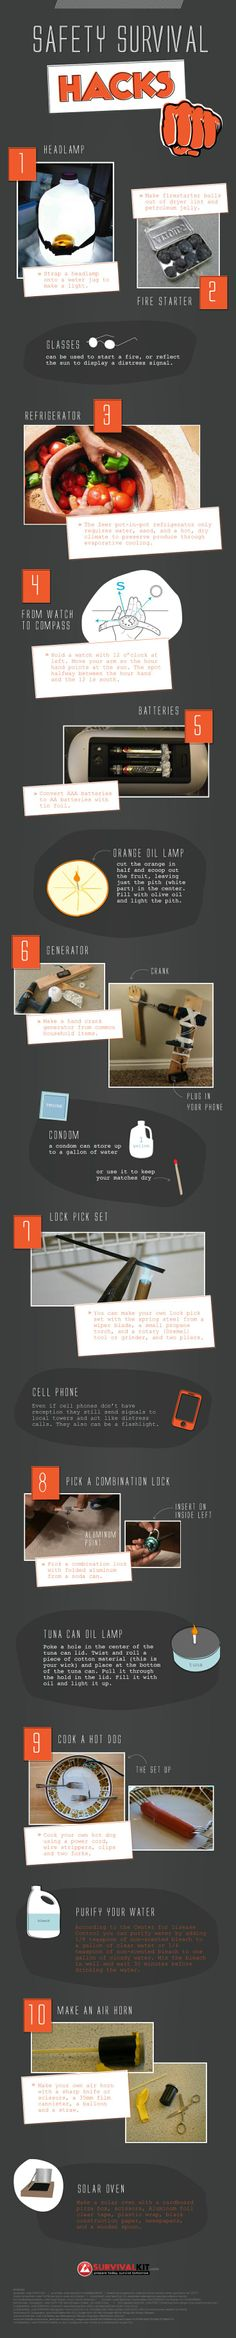 The Preppers List of Safety Survival Hacks [Infographic]